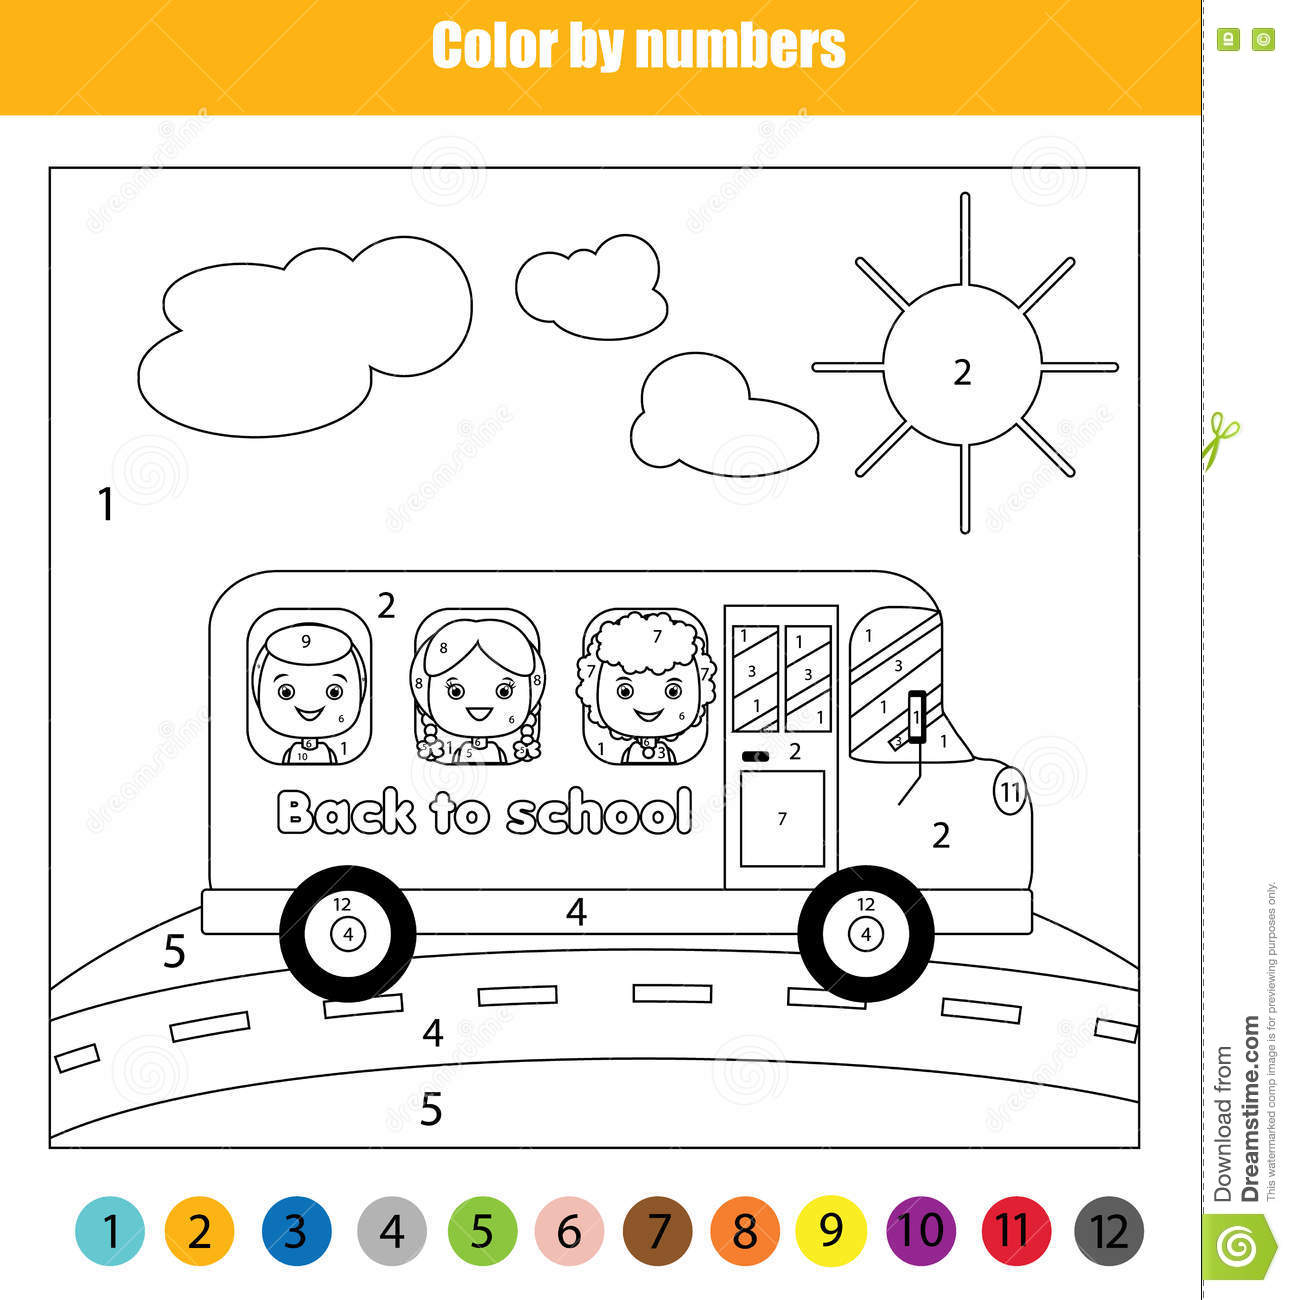 Coloring Page With Kids In School Bus Color By Numbers